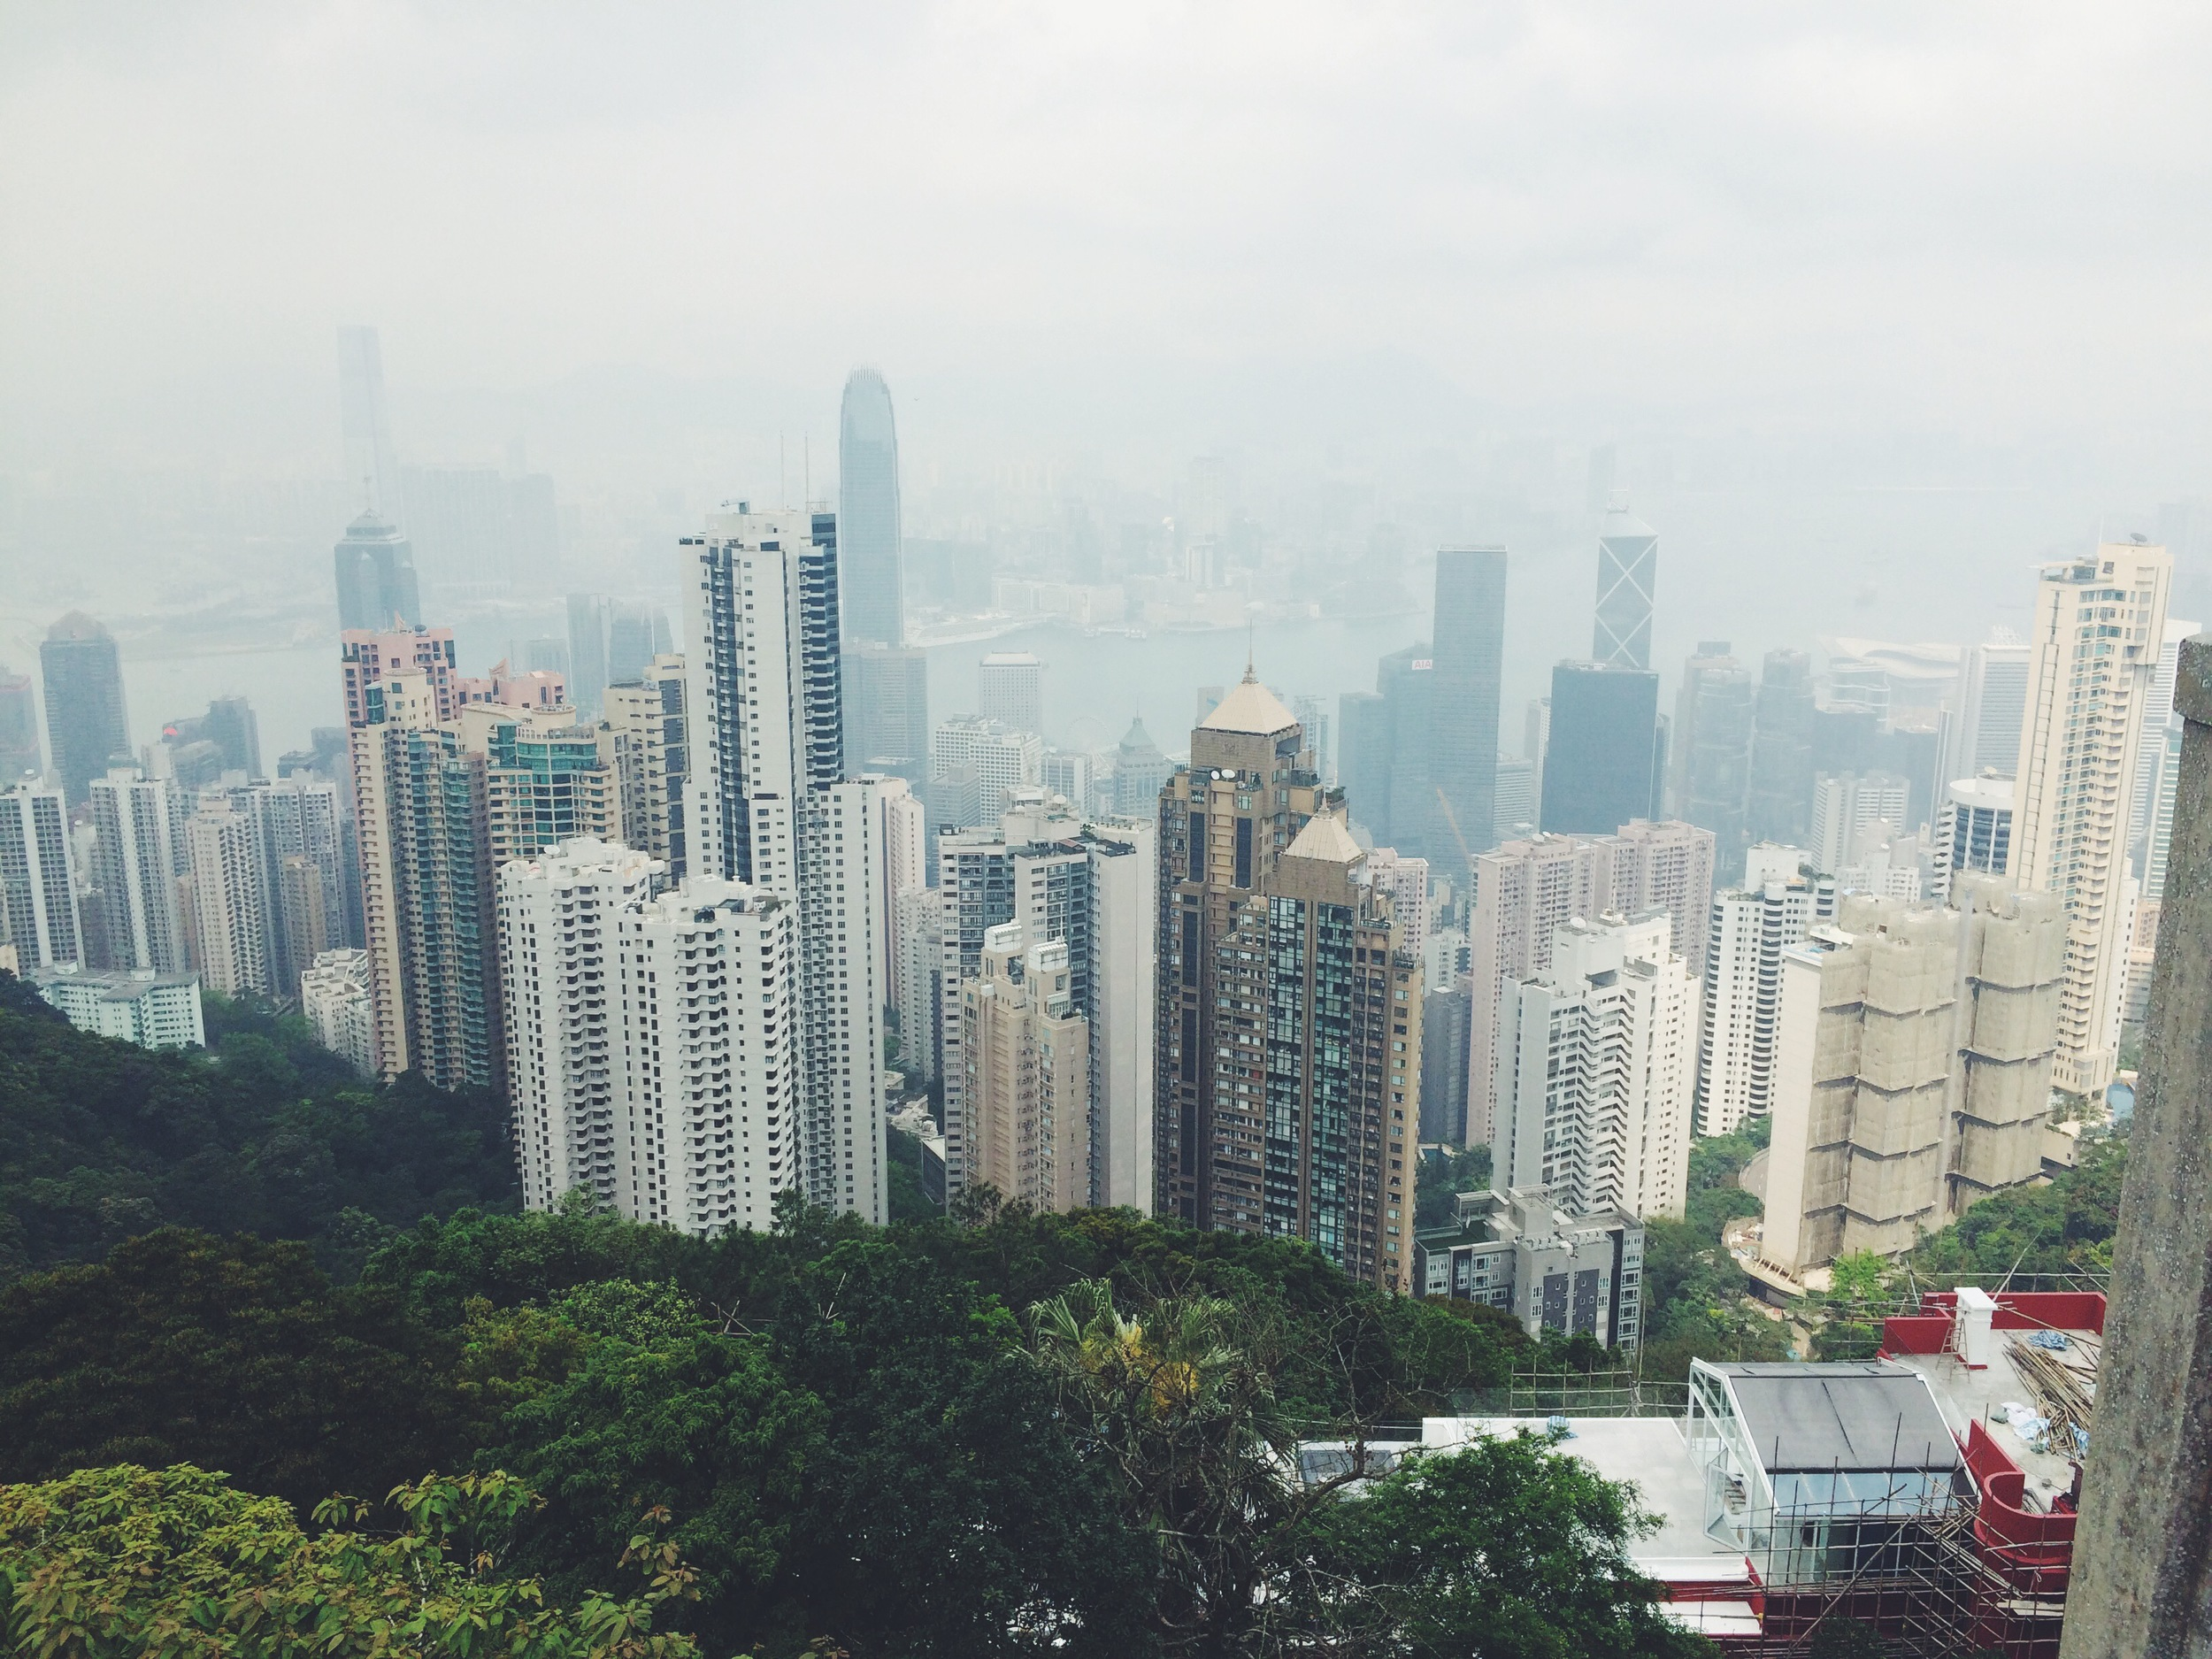 The view from The Peak.